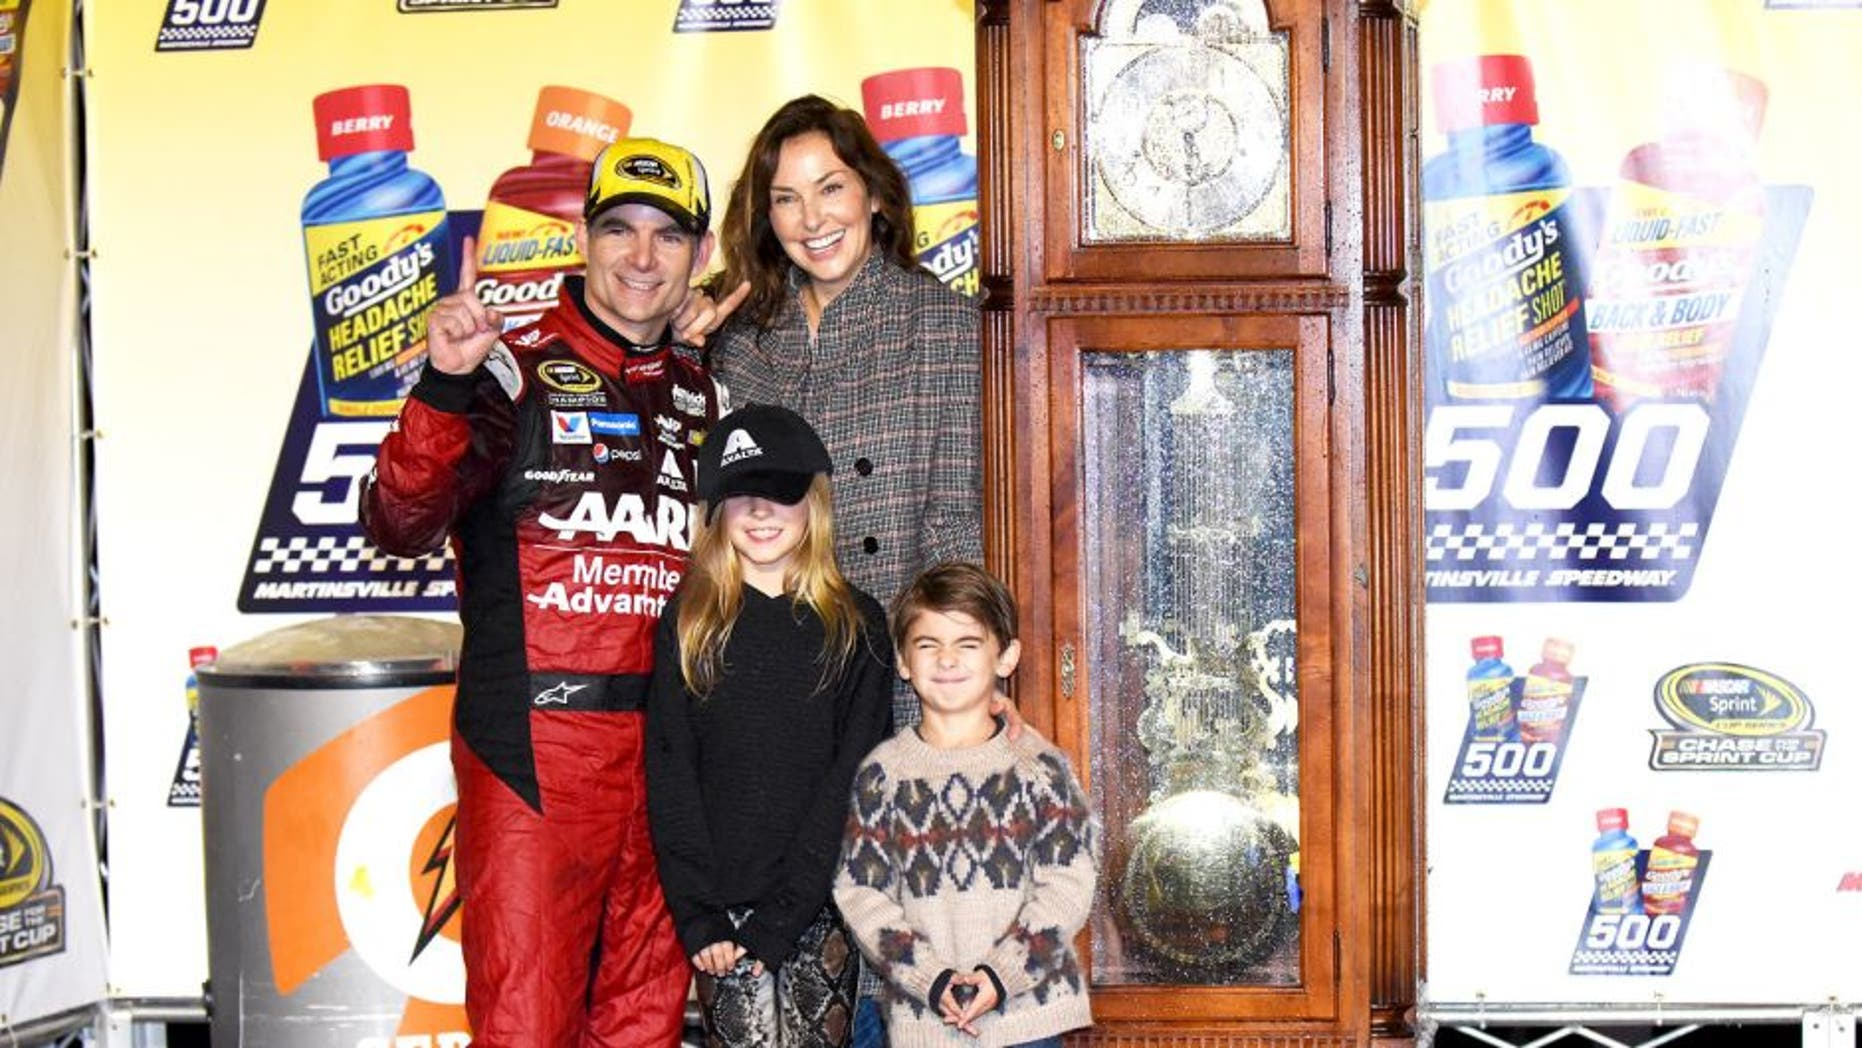 MARTINSVILLE, VA - NOVEMBER 01: Jeff Gordon, driver of the #24 AARP Member Advantages Chevrolet, celebrates in Victory Lane with his wife Ingrid Vandebosch, daughter Ella and son Leo after winning the NASCAR Sprint Cup Series Goody's Headache Relief Shot 500 at Martinsville Speedway on November 1, 2015 in Martinsville, Virginia. (Photo by Jonathan Moore/Getty Images)